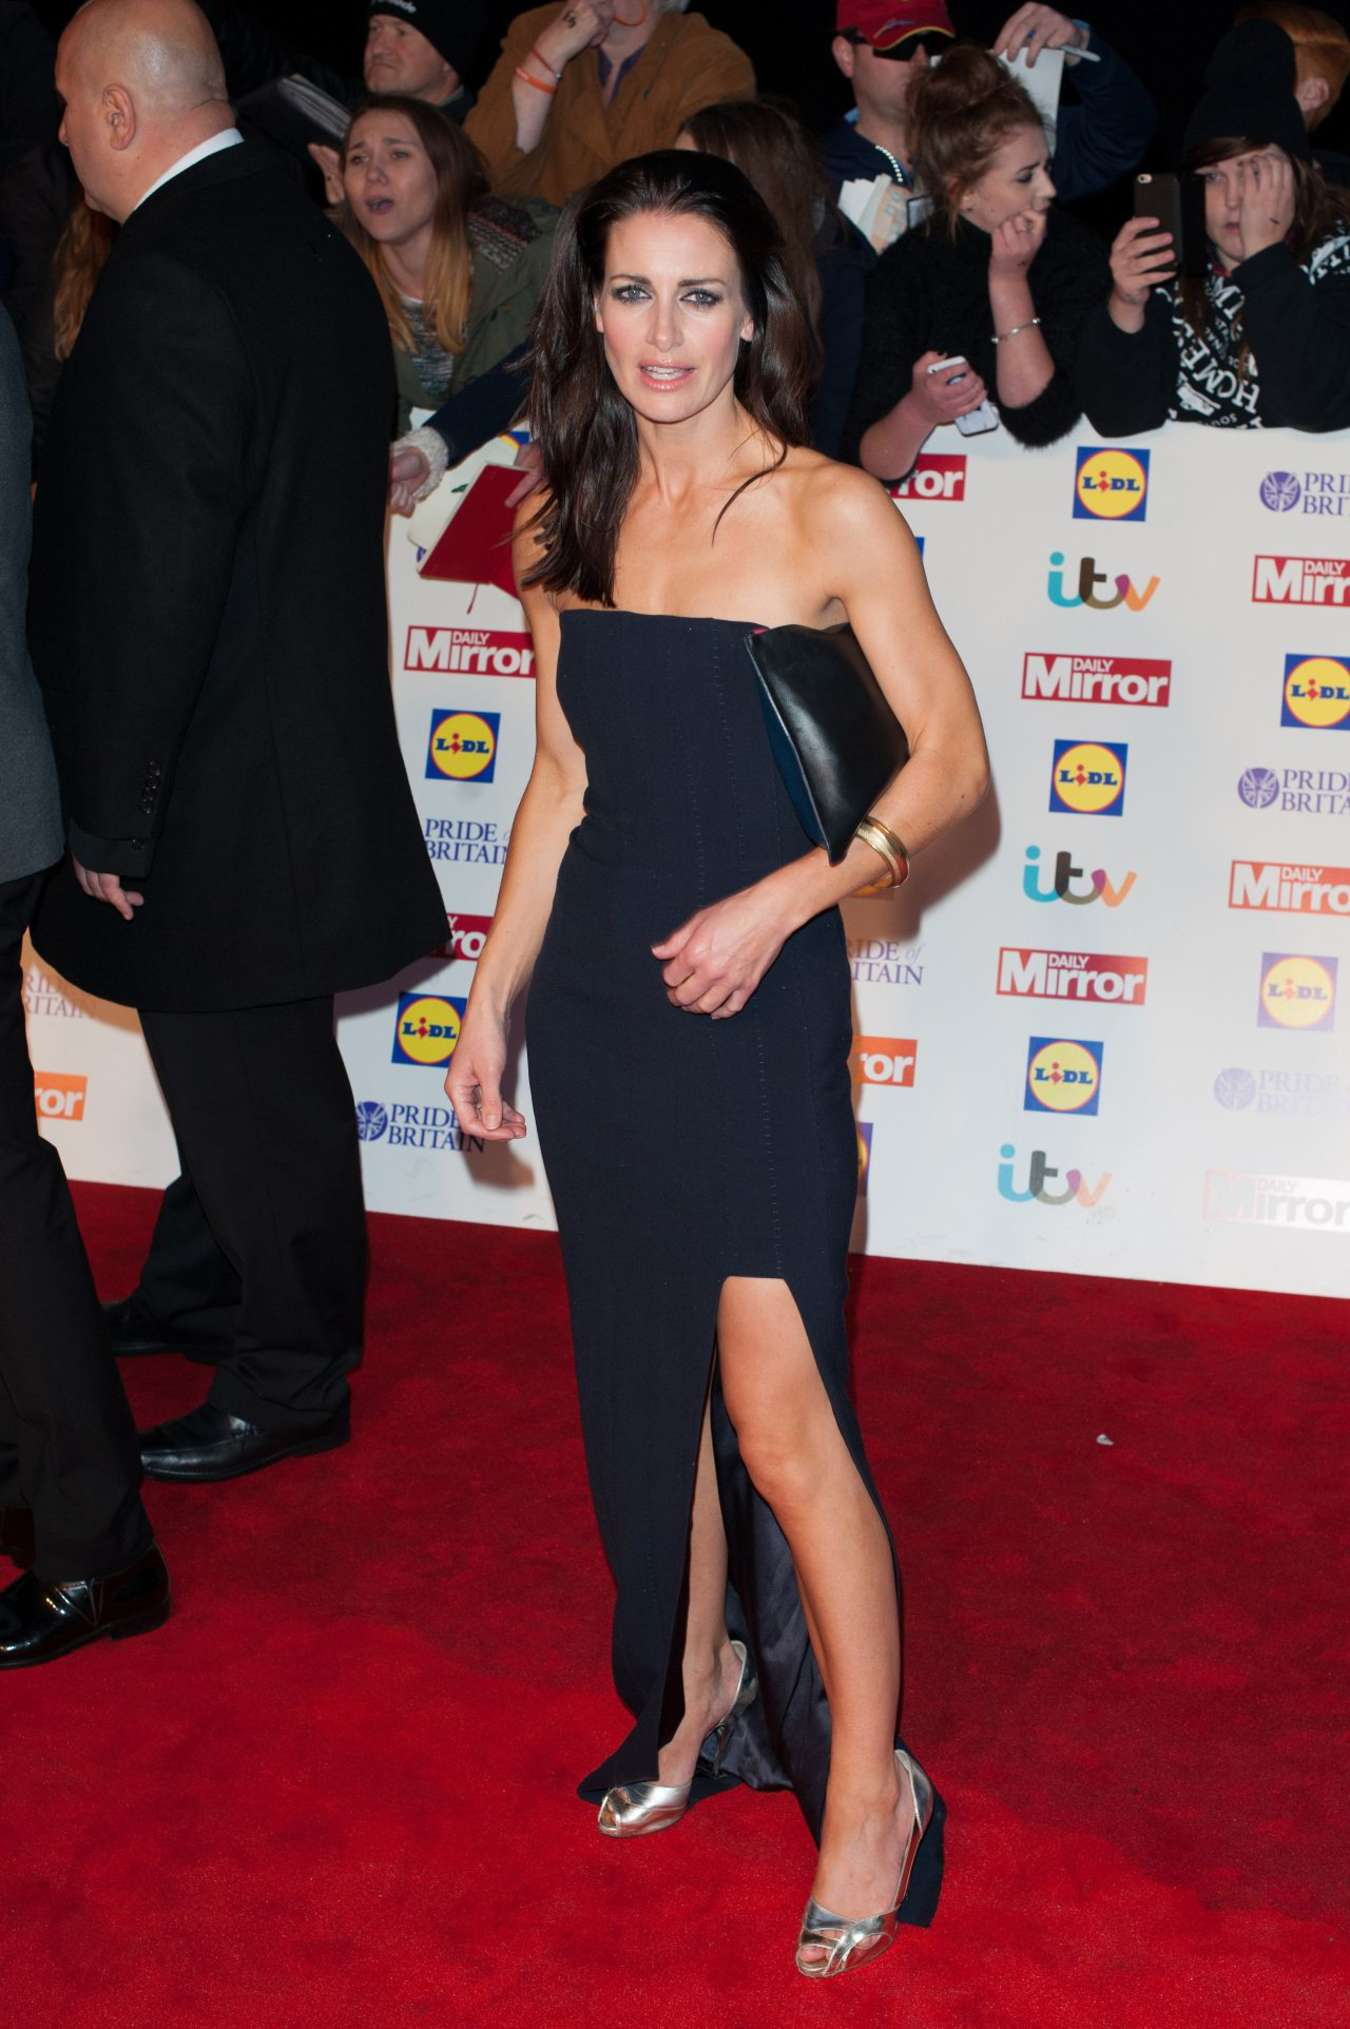 Kirsty Gallacher Pride of Britain Awards in London